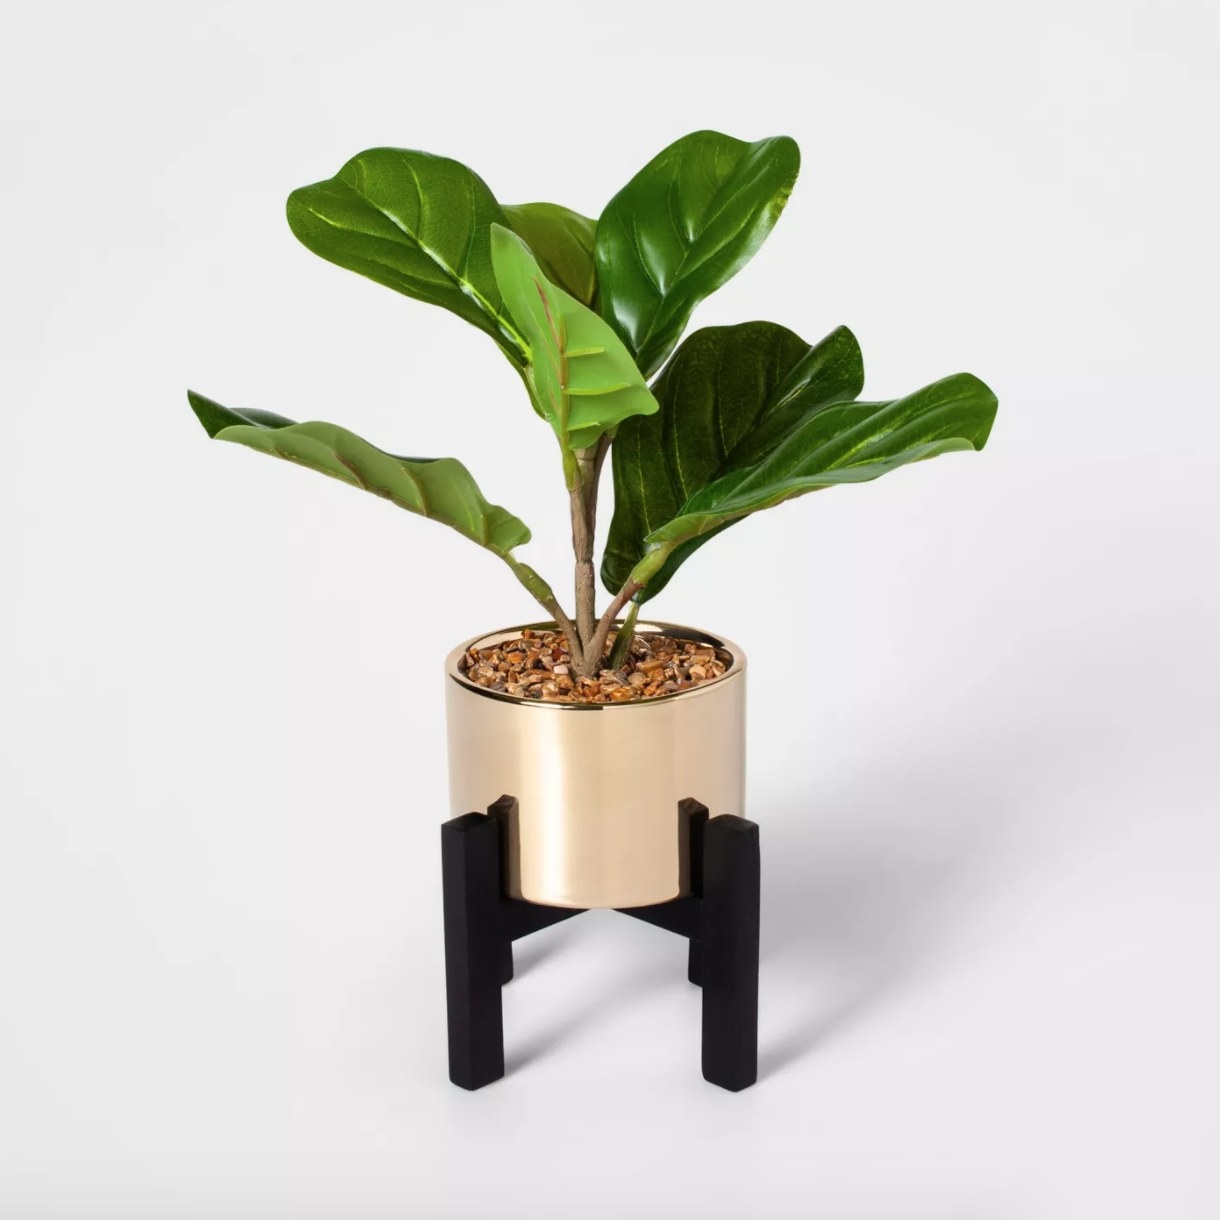 A small faux fiddle leaf fig tree with gold pot and black stand